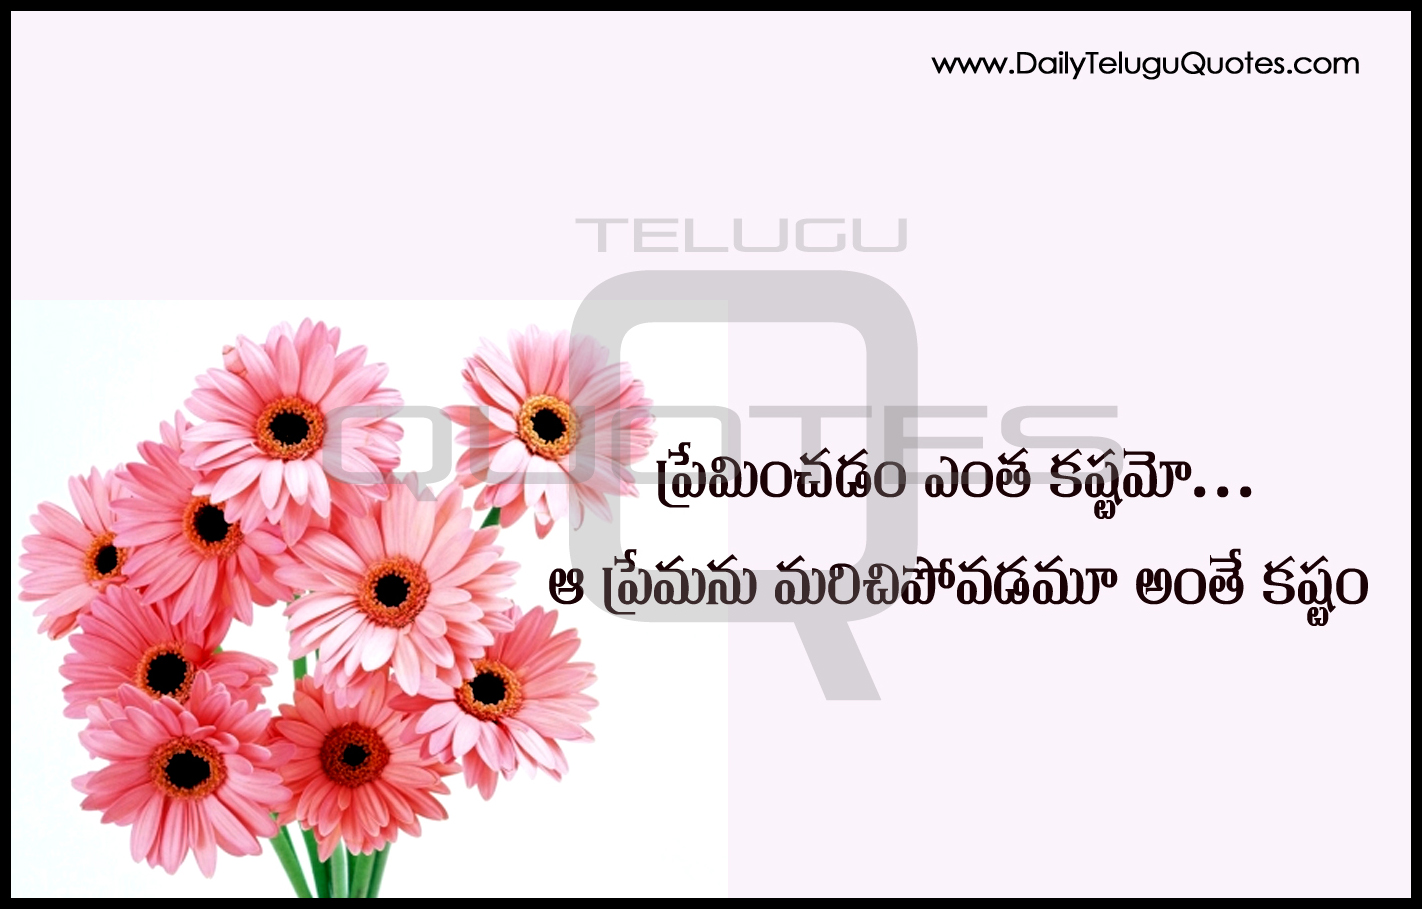 Beautiful Flowers Telugu Quotes About Feelings Of Love Motivational